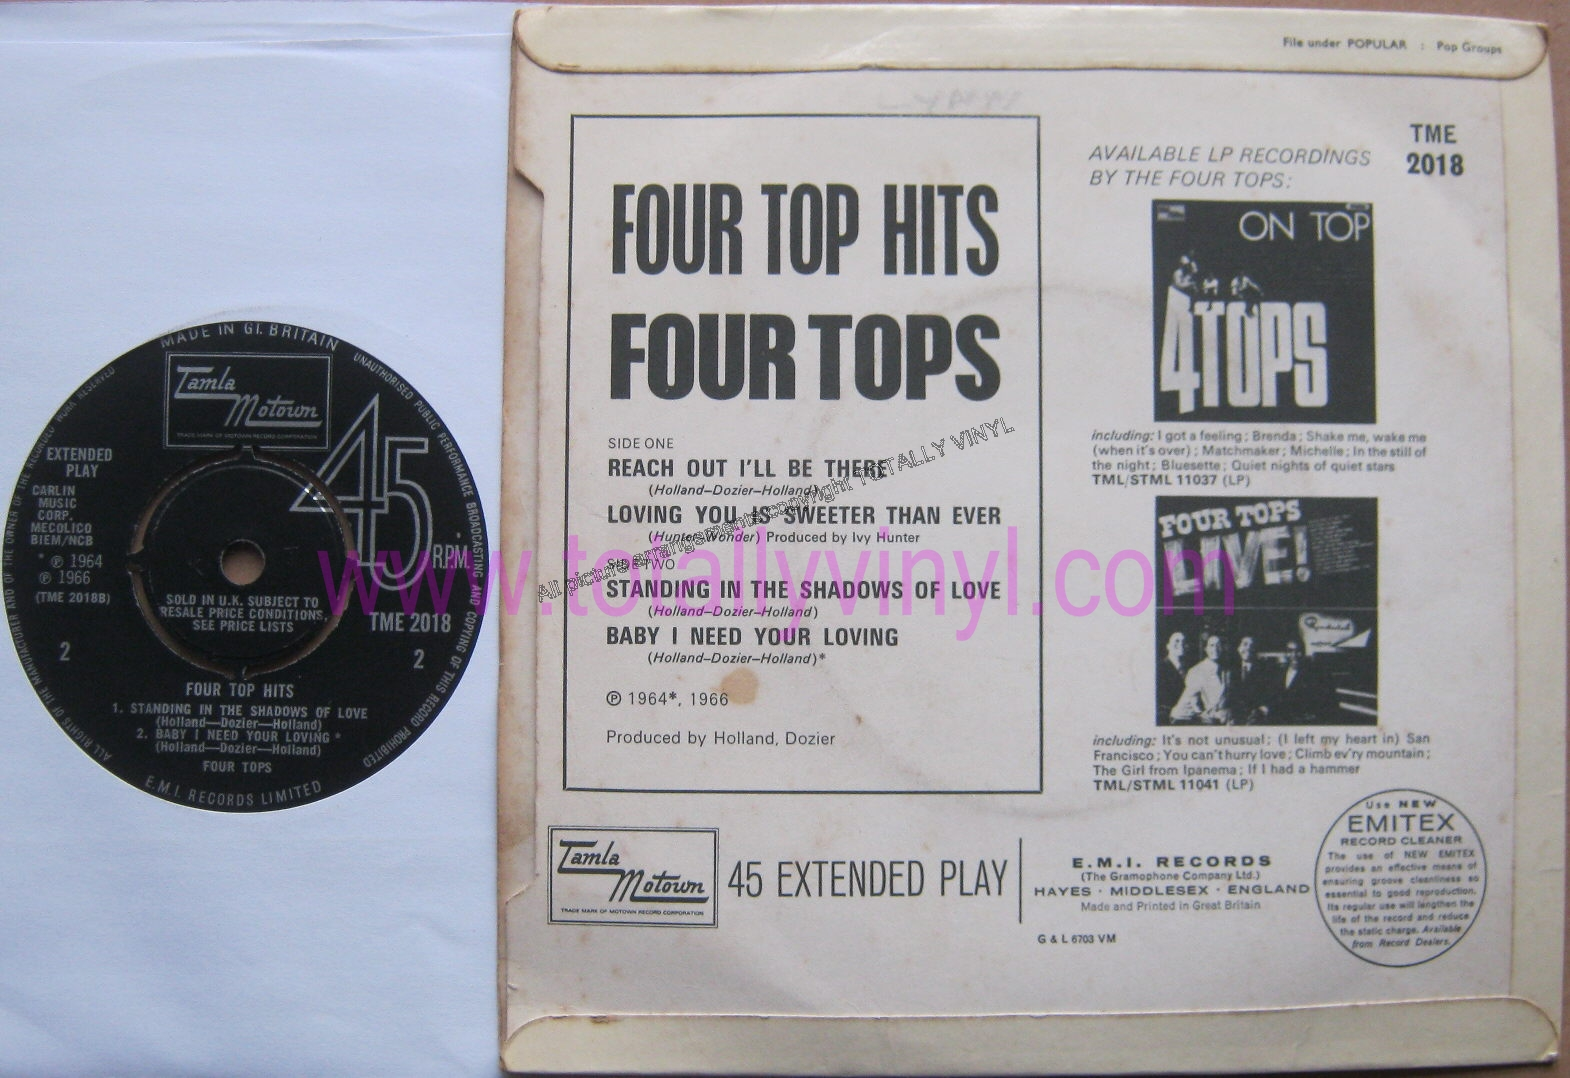 Download mp3 full flac album vinyl rip Loving You Is Sweeter Than Ever - The Four Tops* - Greatest Hits (Vinyl, LP)